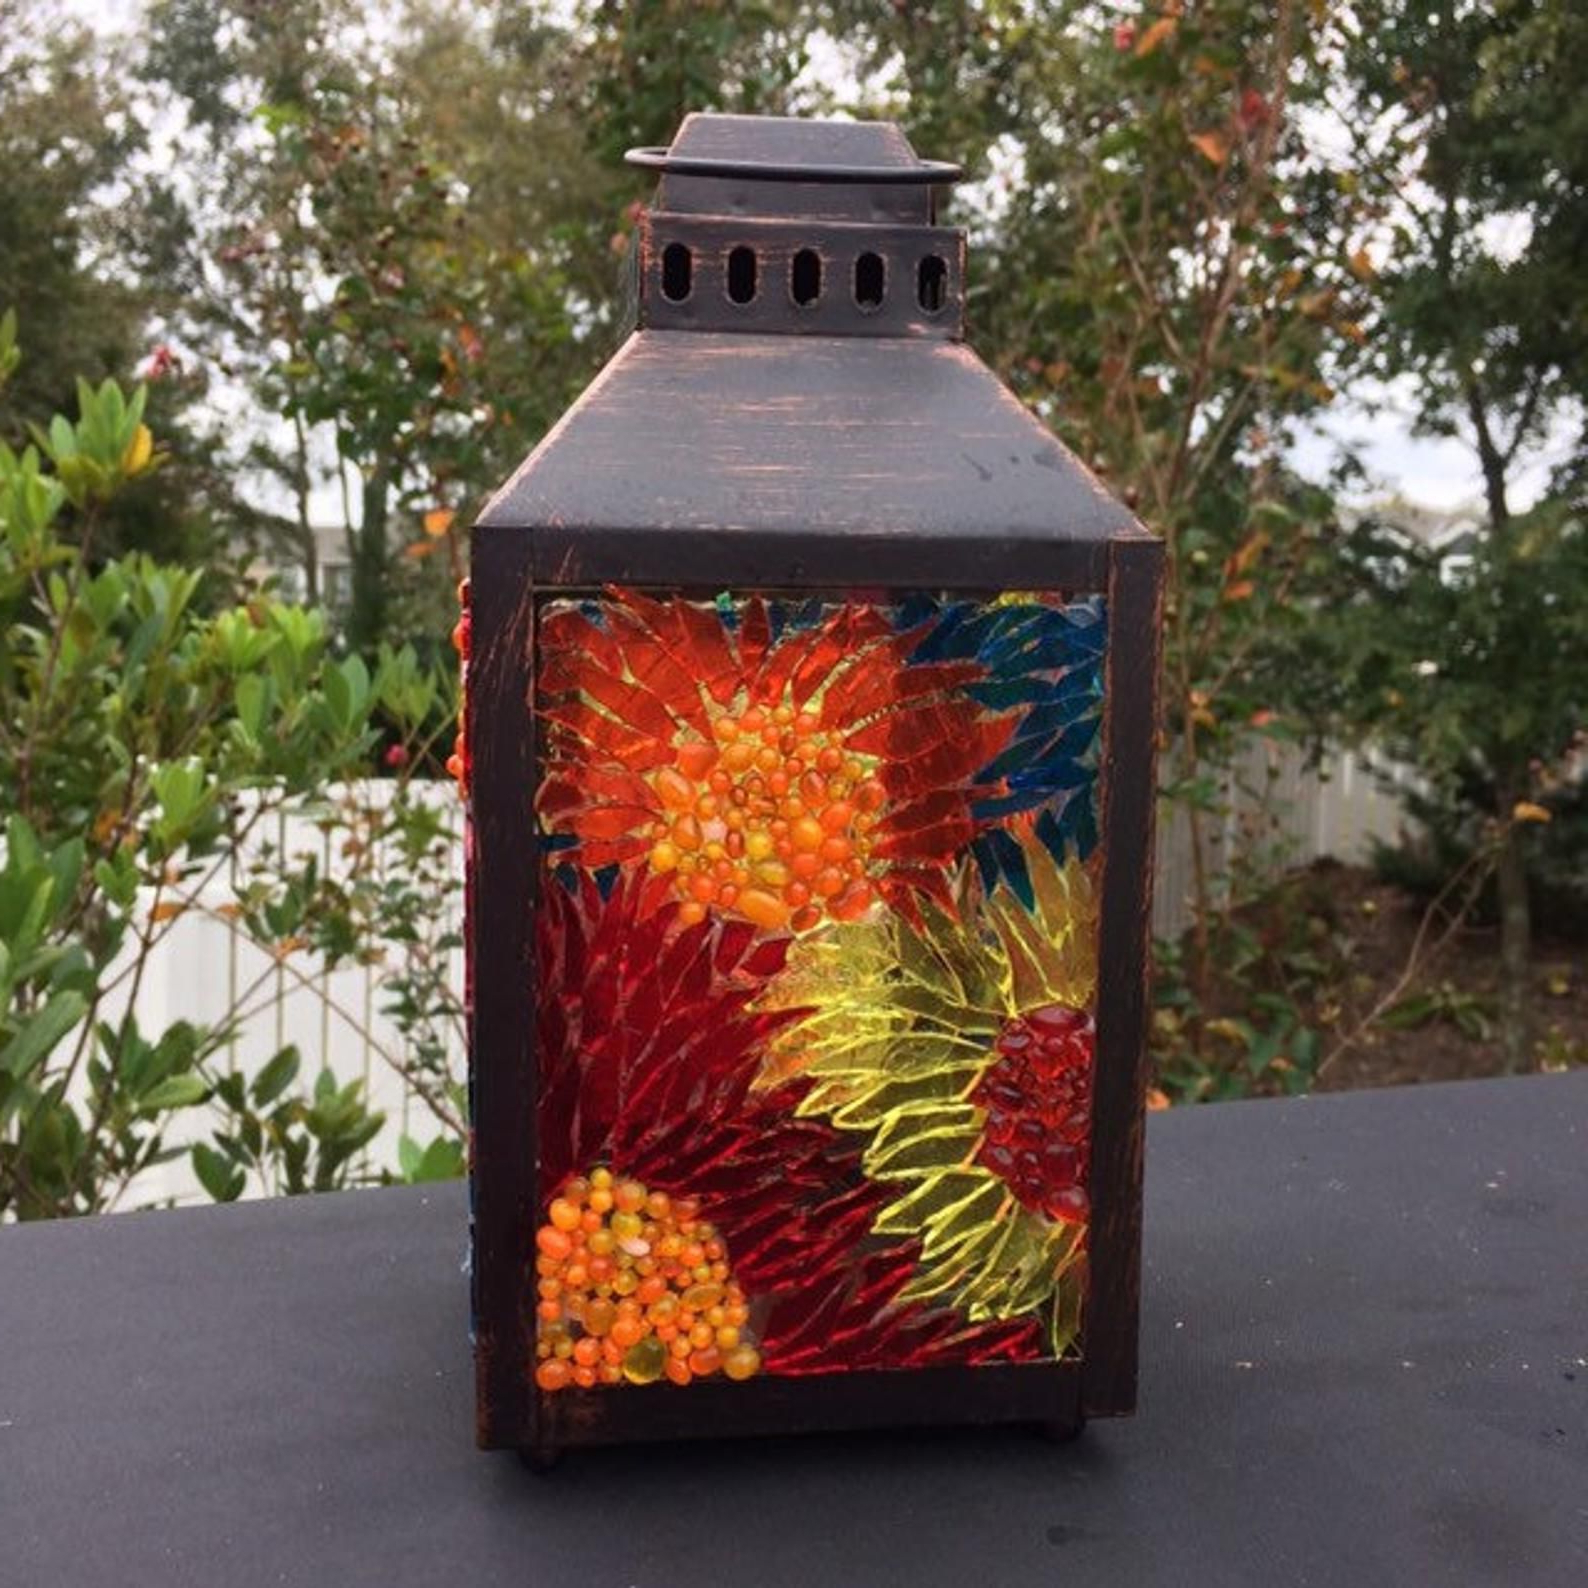 Most Recent Mosaic Lantern Small, Stained Glass Lamtern For Garden With Regard To Wrentham Beveled Glass Outdoor Wall Lanterns (View 9 of 15)